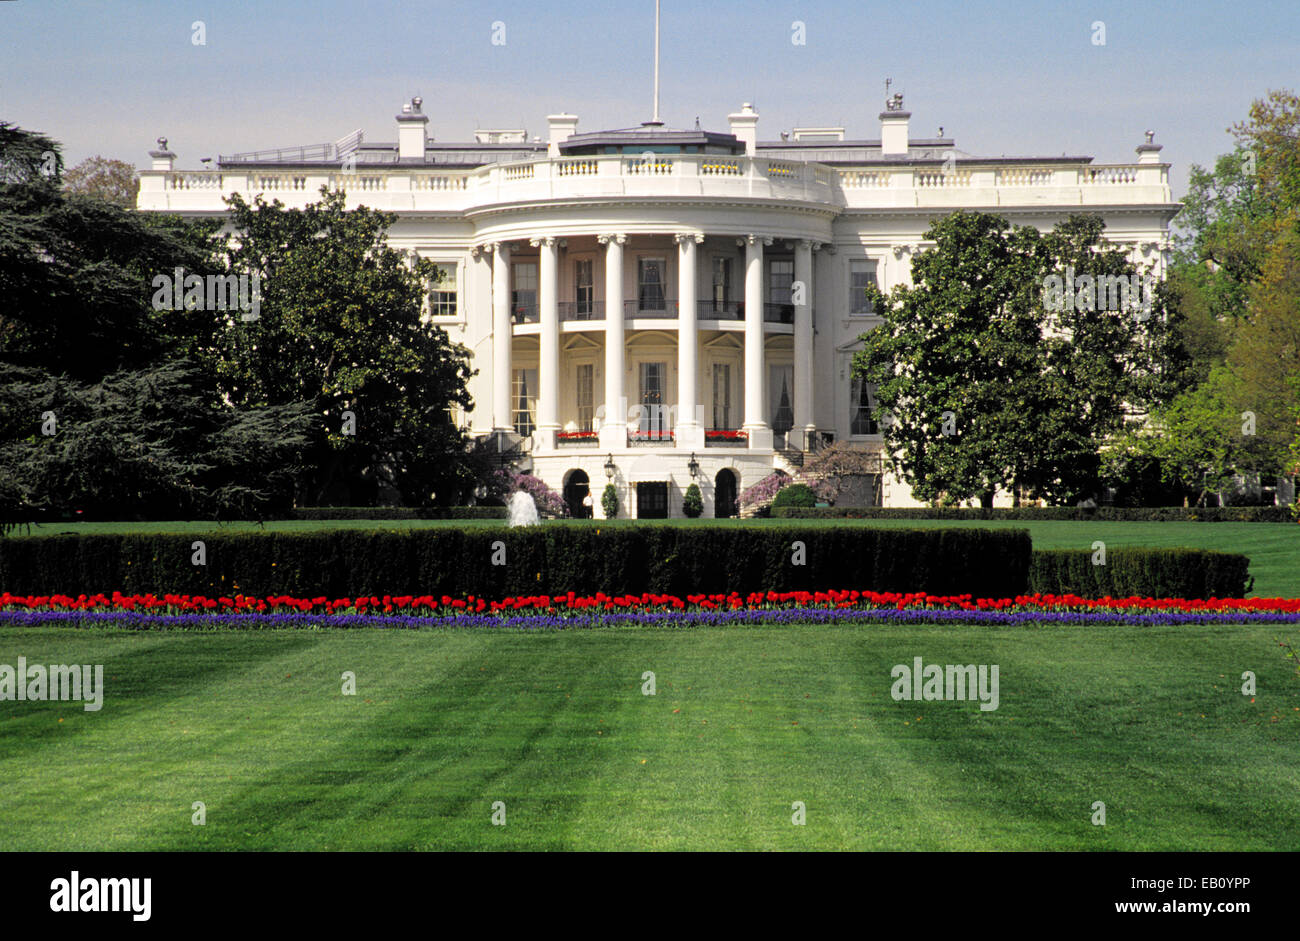 The White House Is At 1600 Pennsylvania Avenue The Most Famous